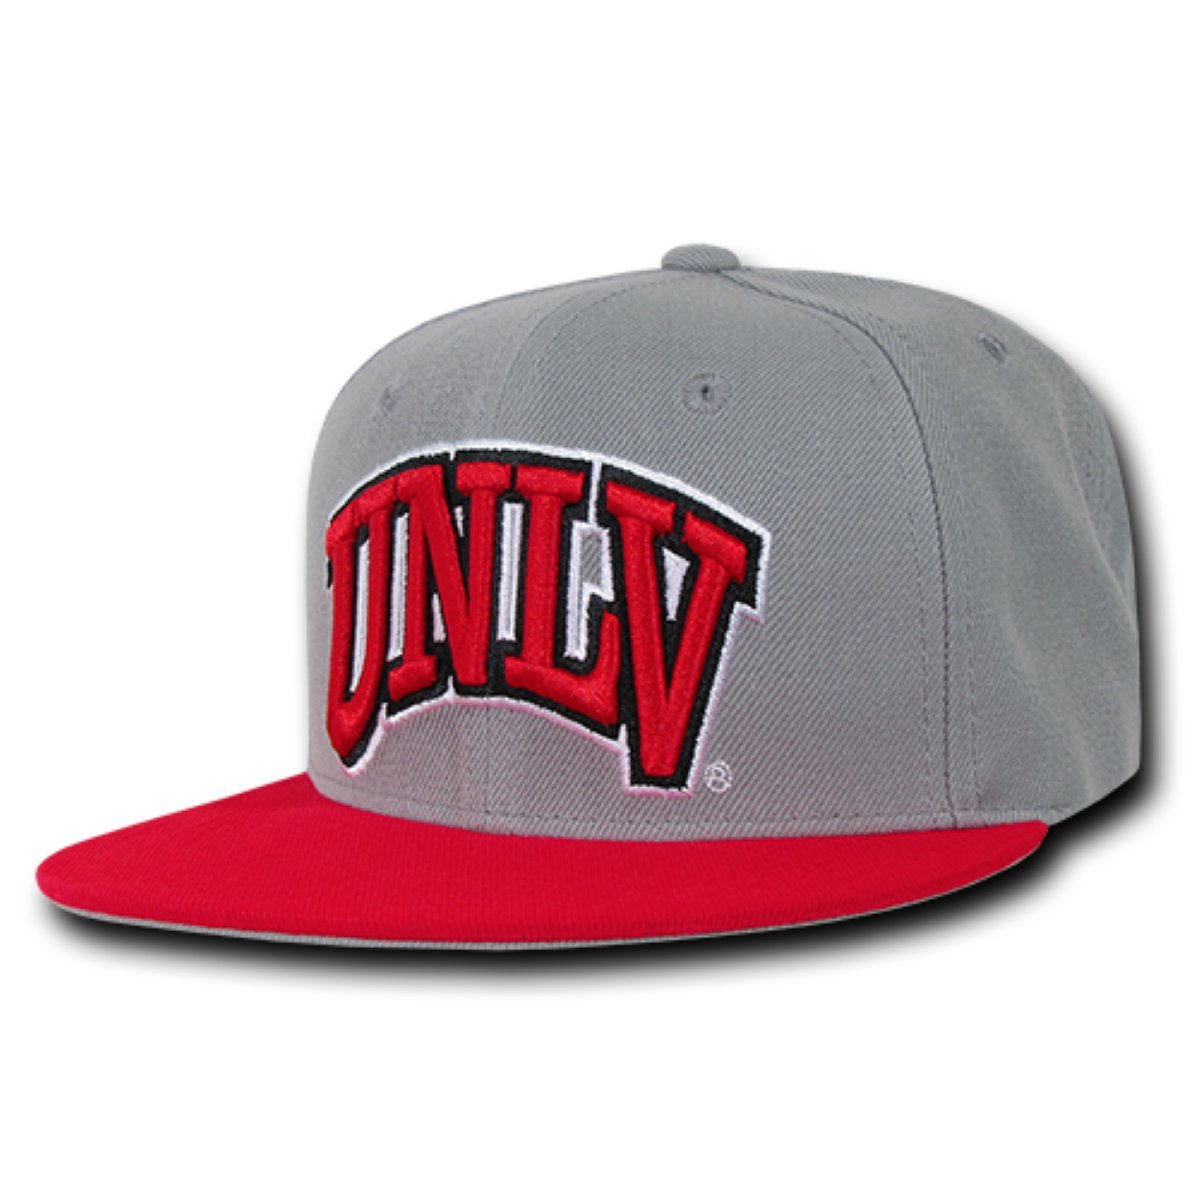 One Size Grey Red W Republic Apparel Mens College Snapback